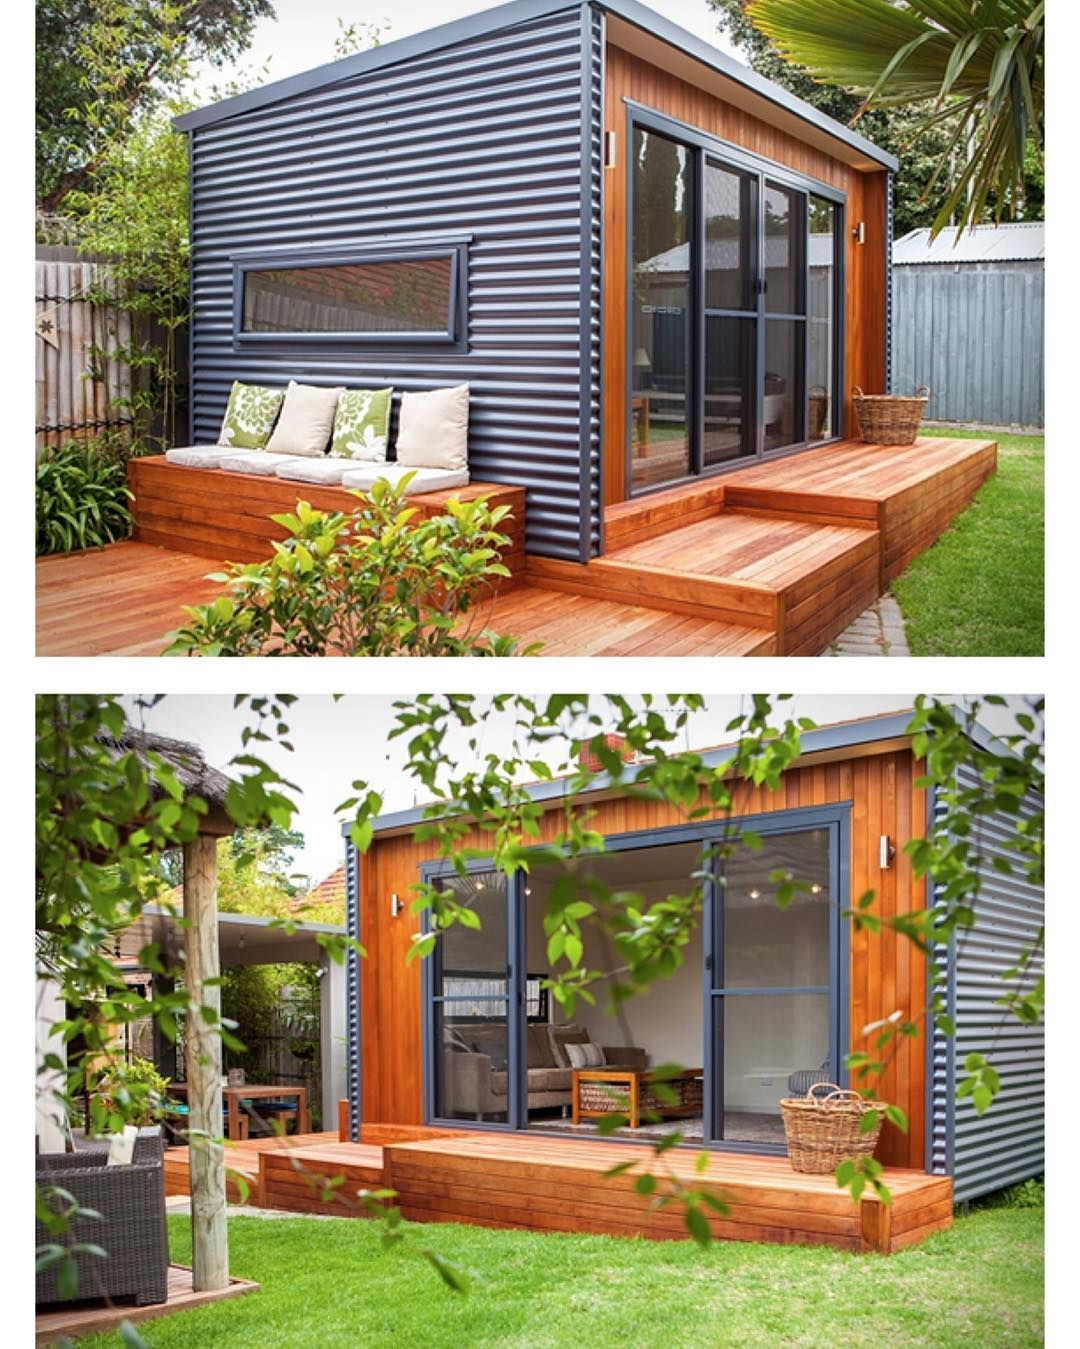 Backyard Offices by Inoutside #Australia | More images @prefabnsmallhomes #interiors #interiordesign #architecture #decoration #interior #home #design #camper #bookofcabins #homedecor #decoration #decor #prefab #diy #lifestyle #compactliving #fineinteriors #cabin #shed #tinyhomes #tinyhouse #cabinfever #inspiration #tinyhousemovement #airstream #treehouse #cabinlife #cottage #compactliving